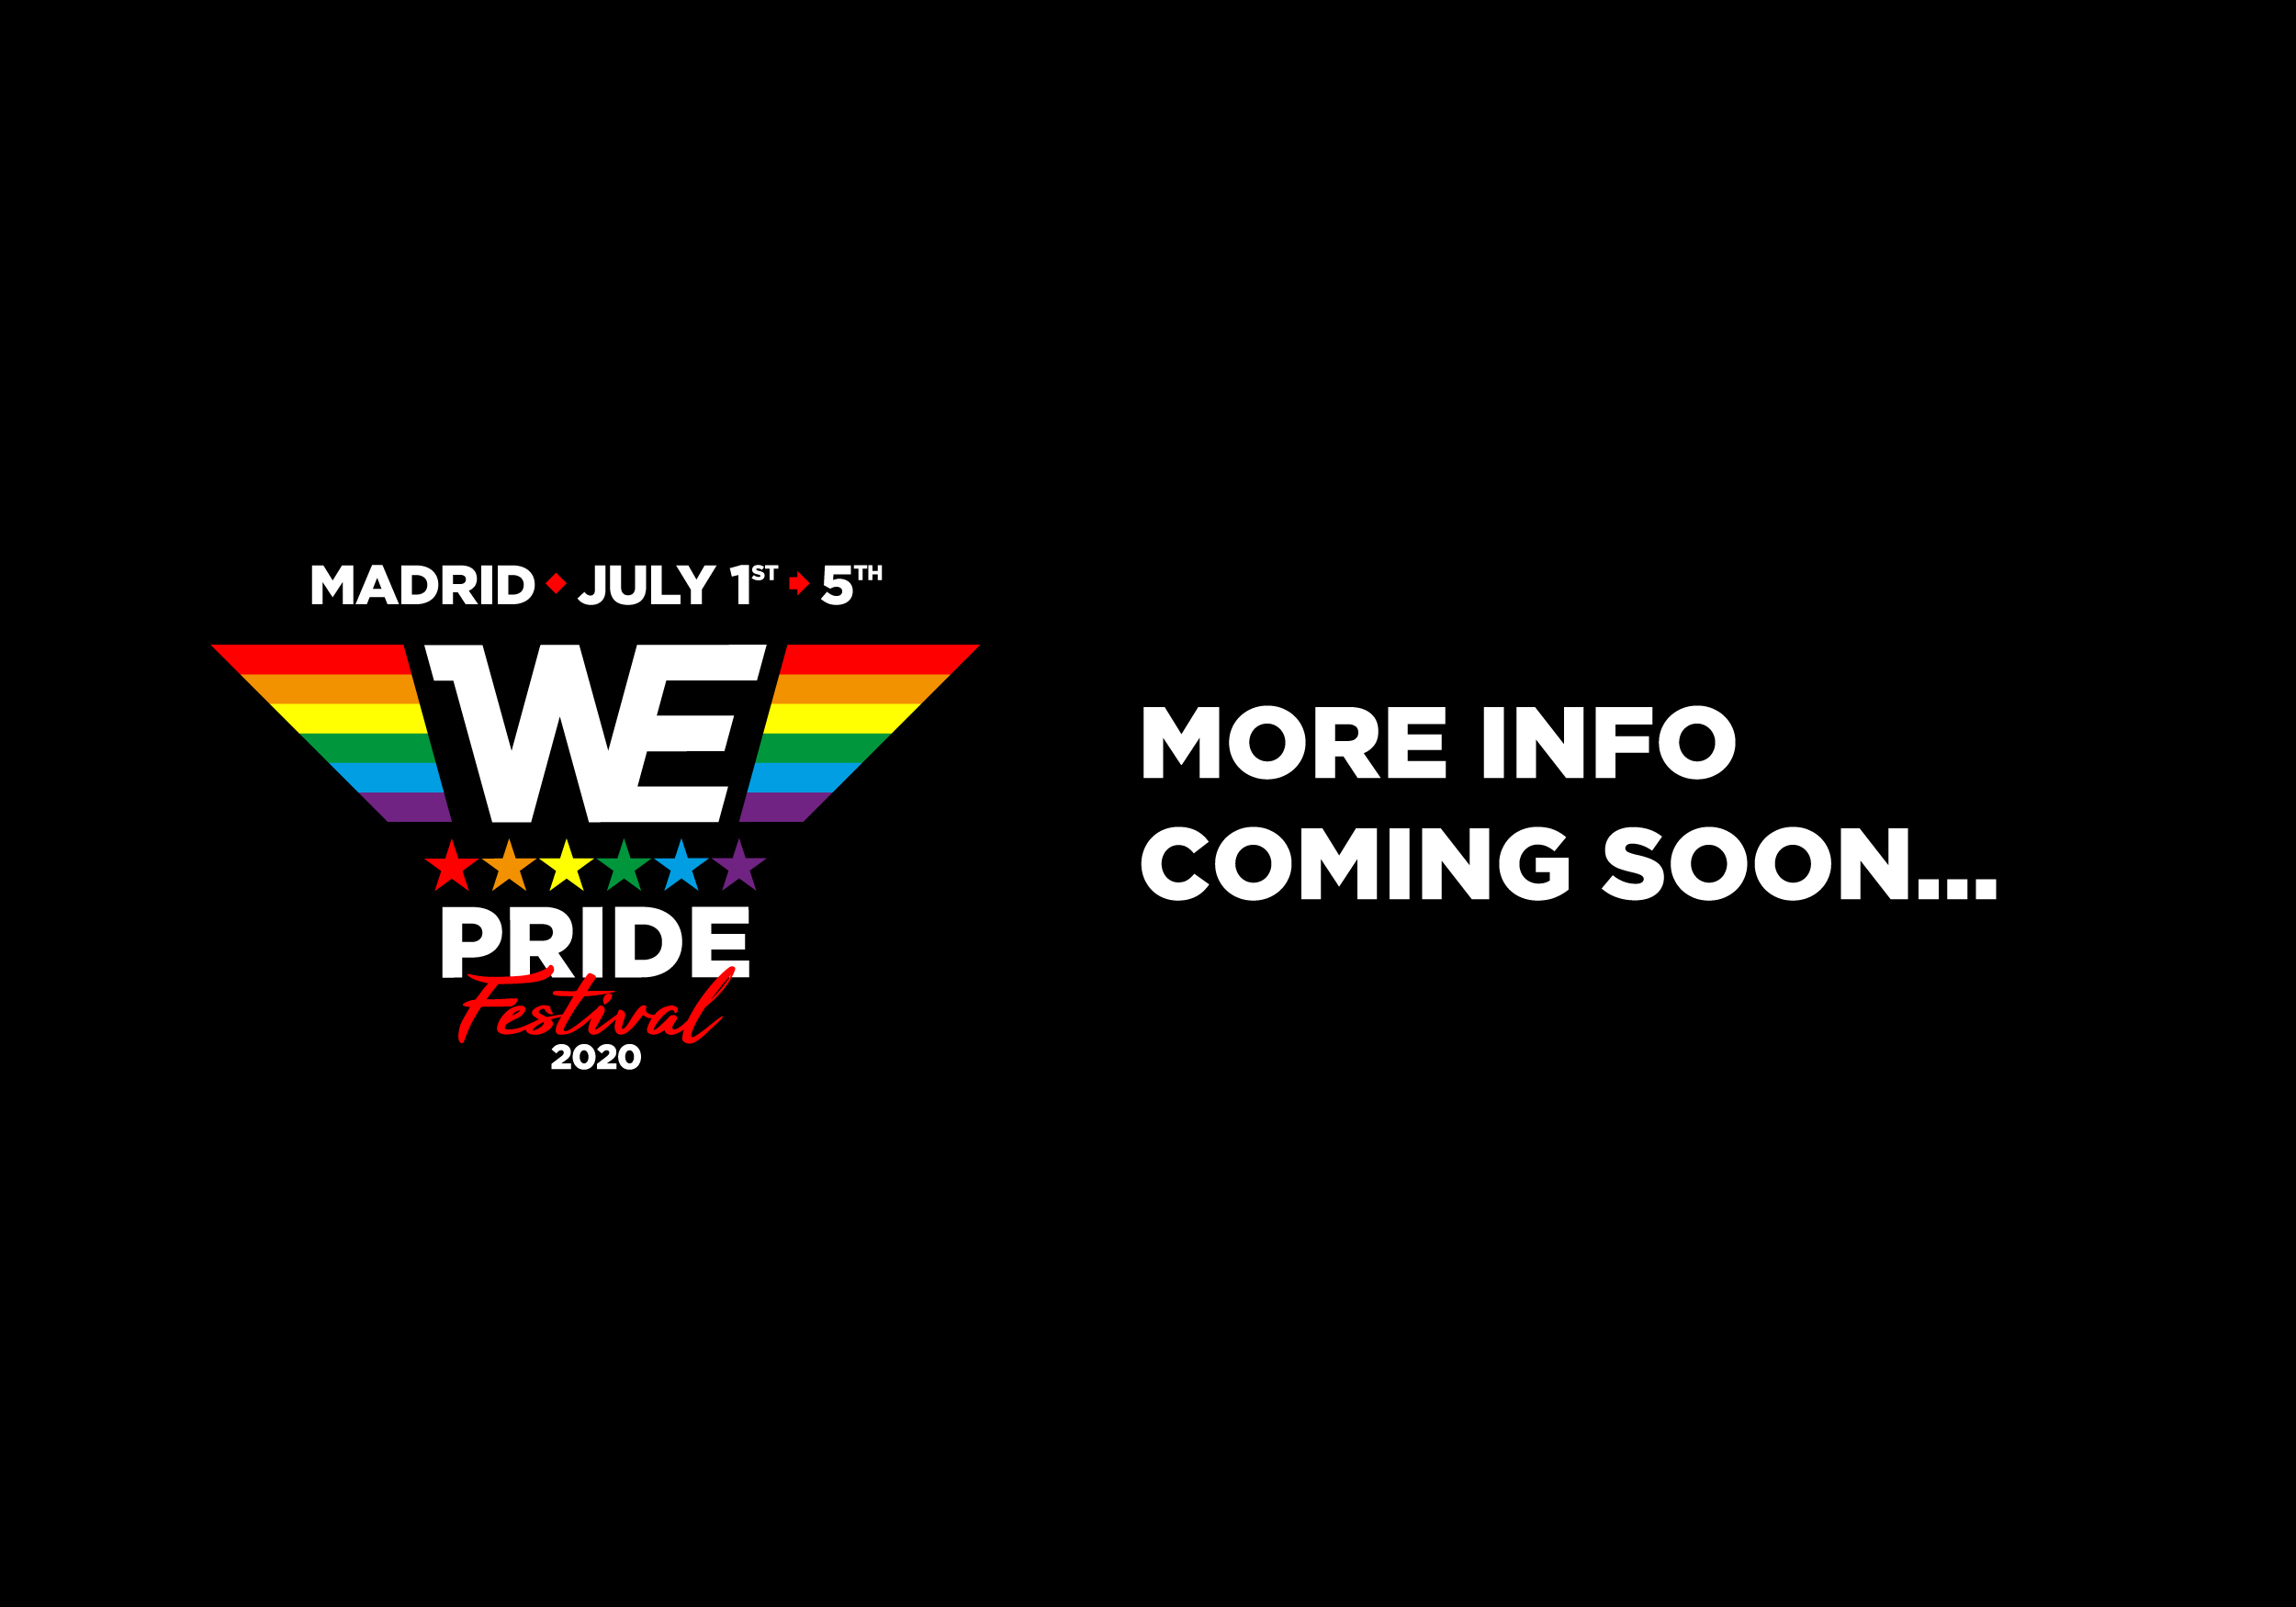 WE-PrideFestival2020-WEB-MOREINFO